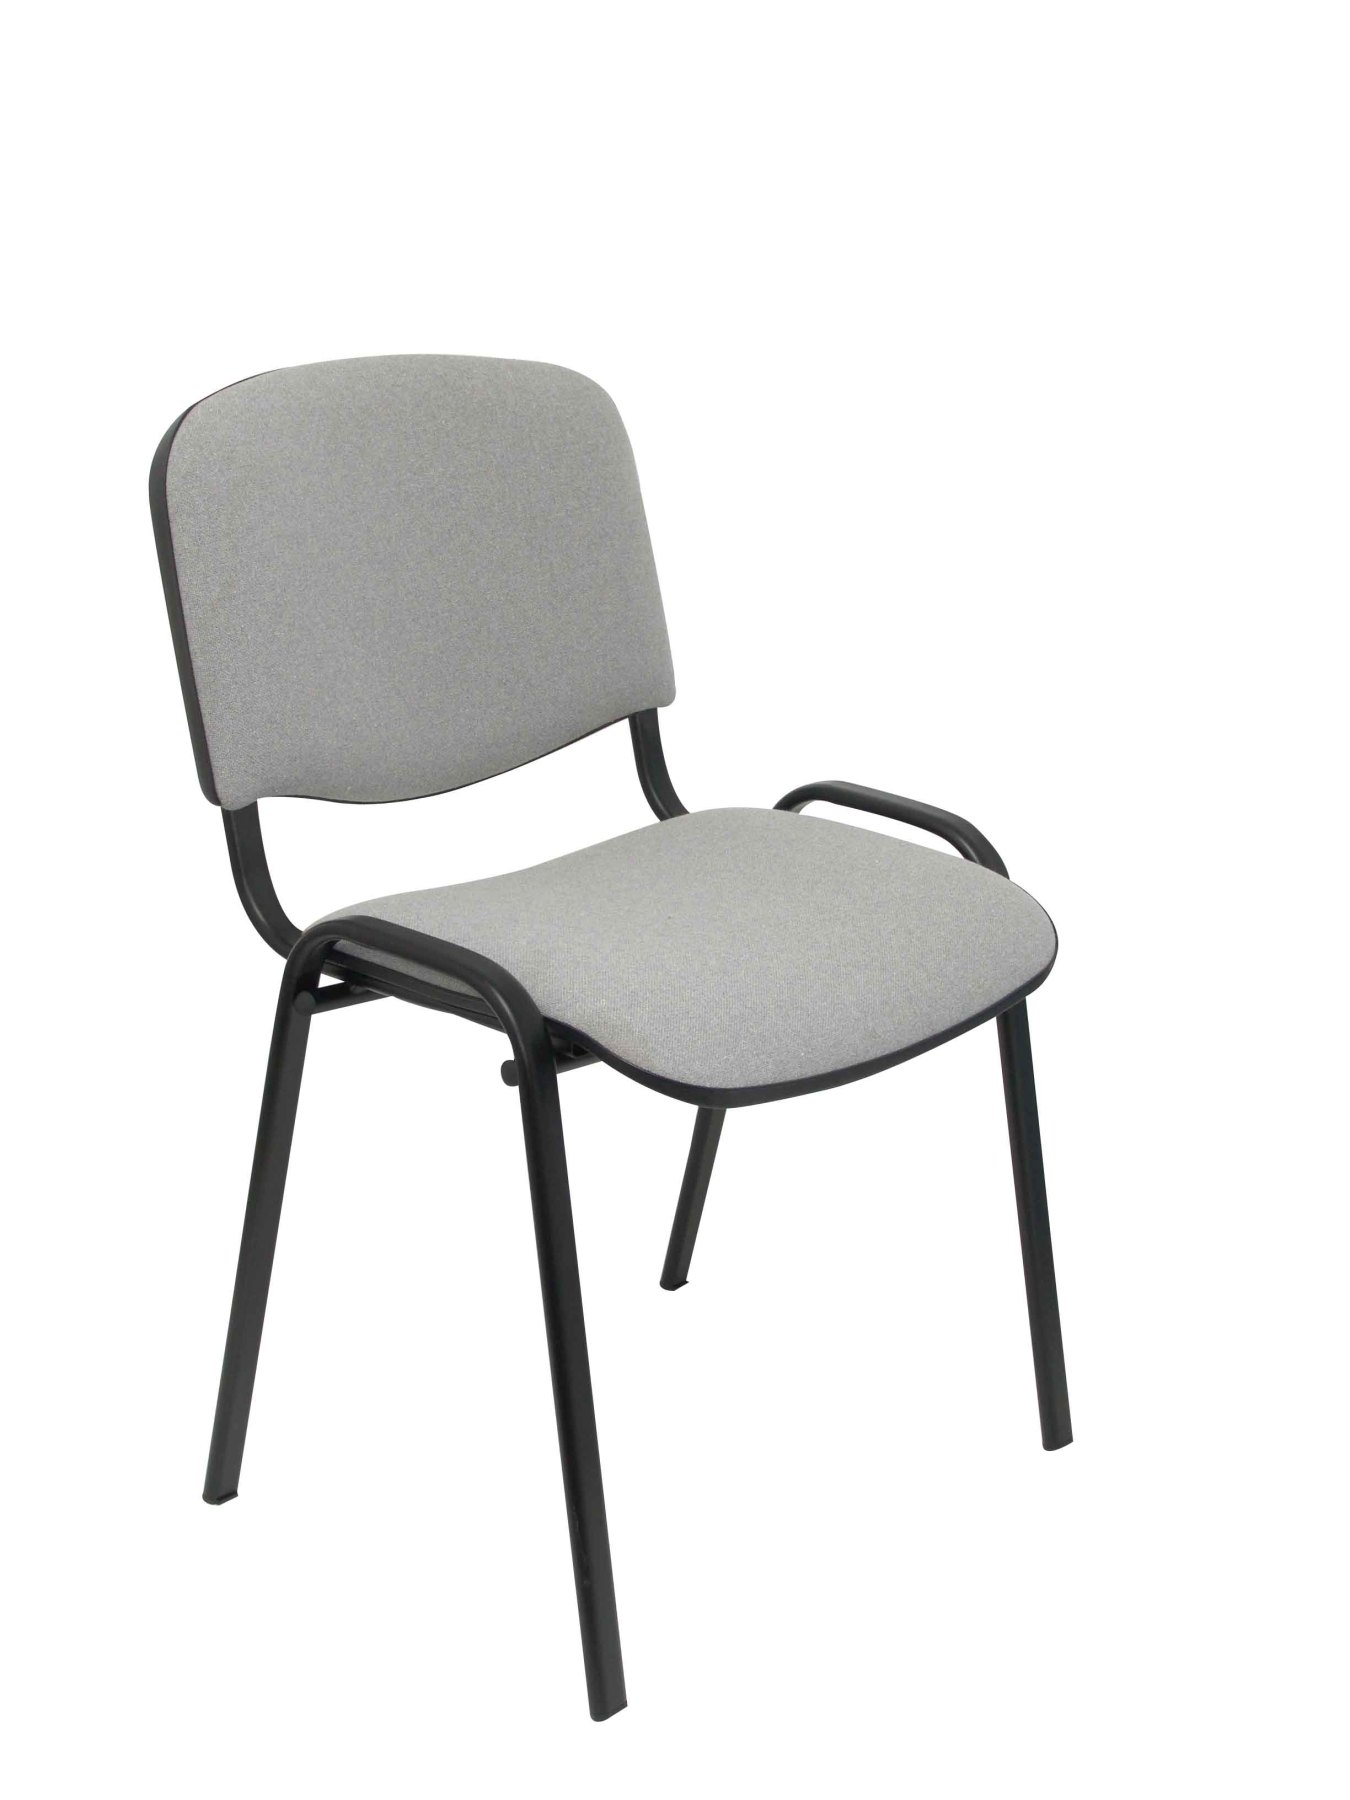 Confident Chair Ergonomic, Stackable, Multi-purpose And Structure In Black Color Seat And Back Upholstered In Fabric AR